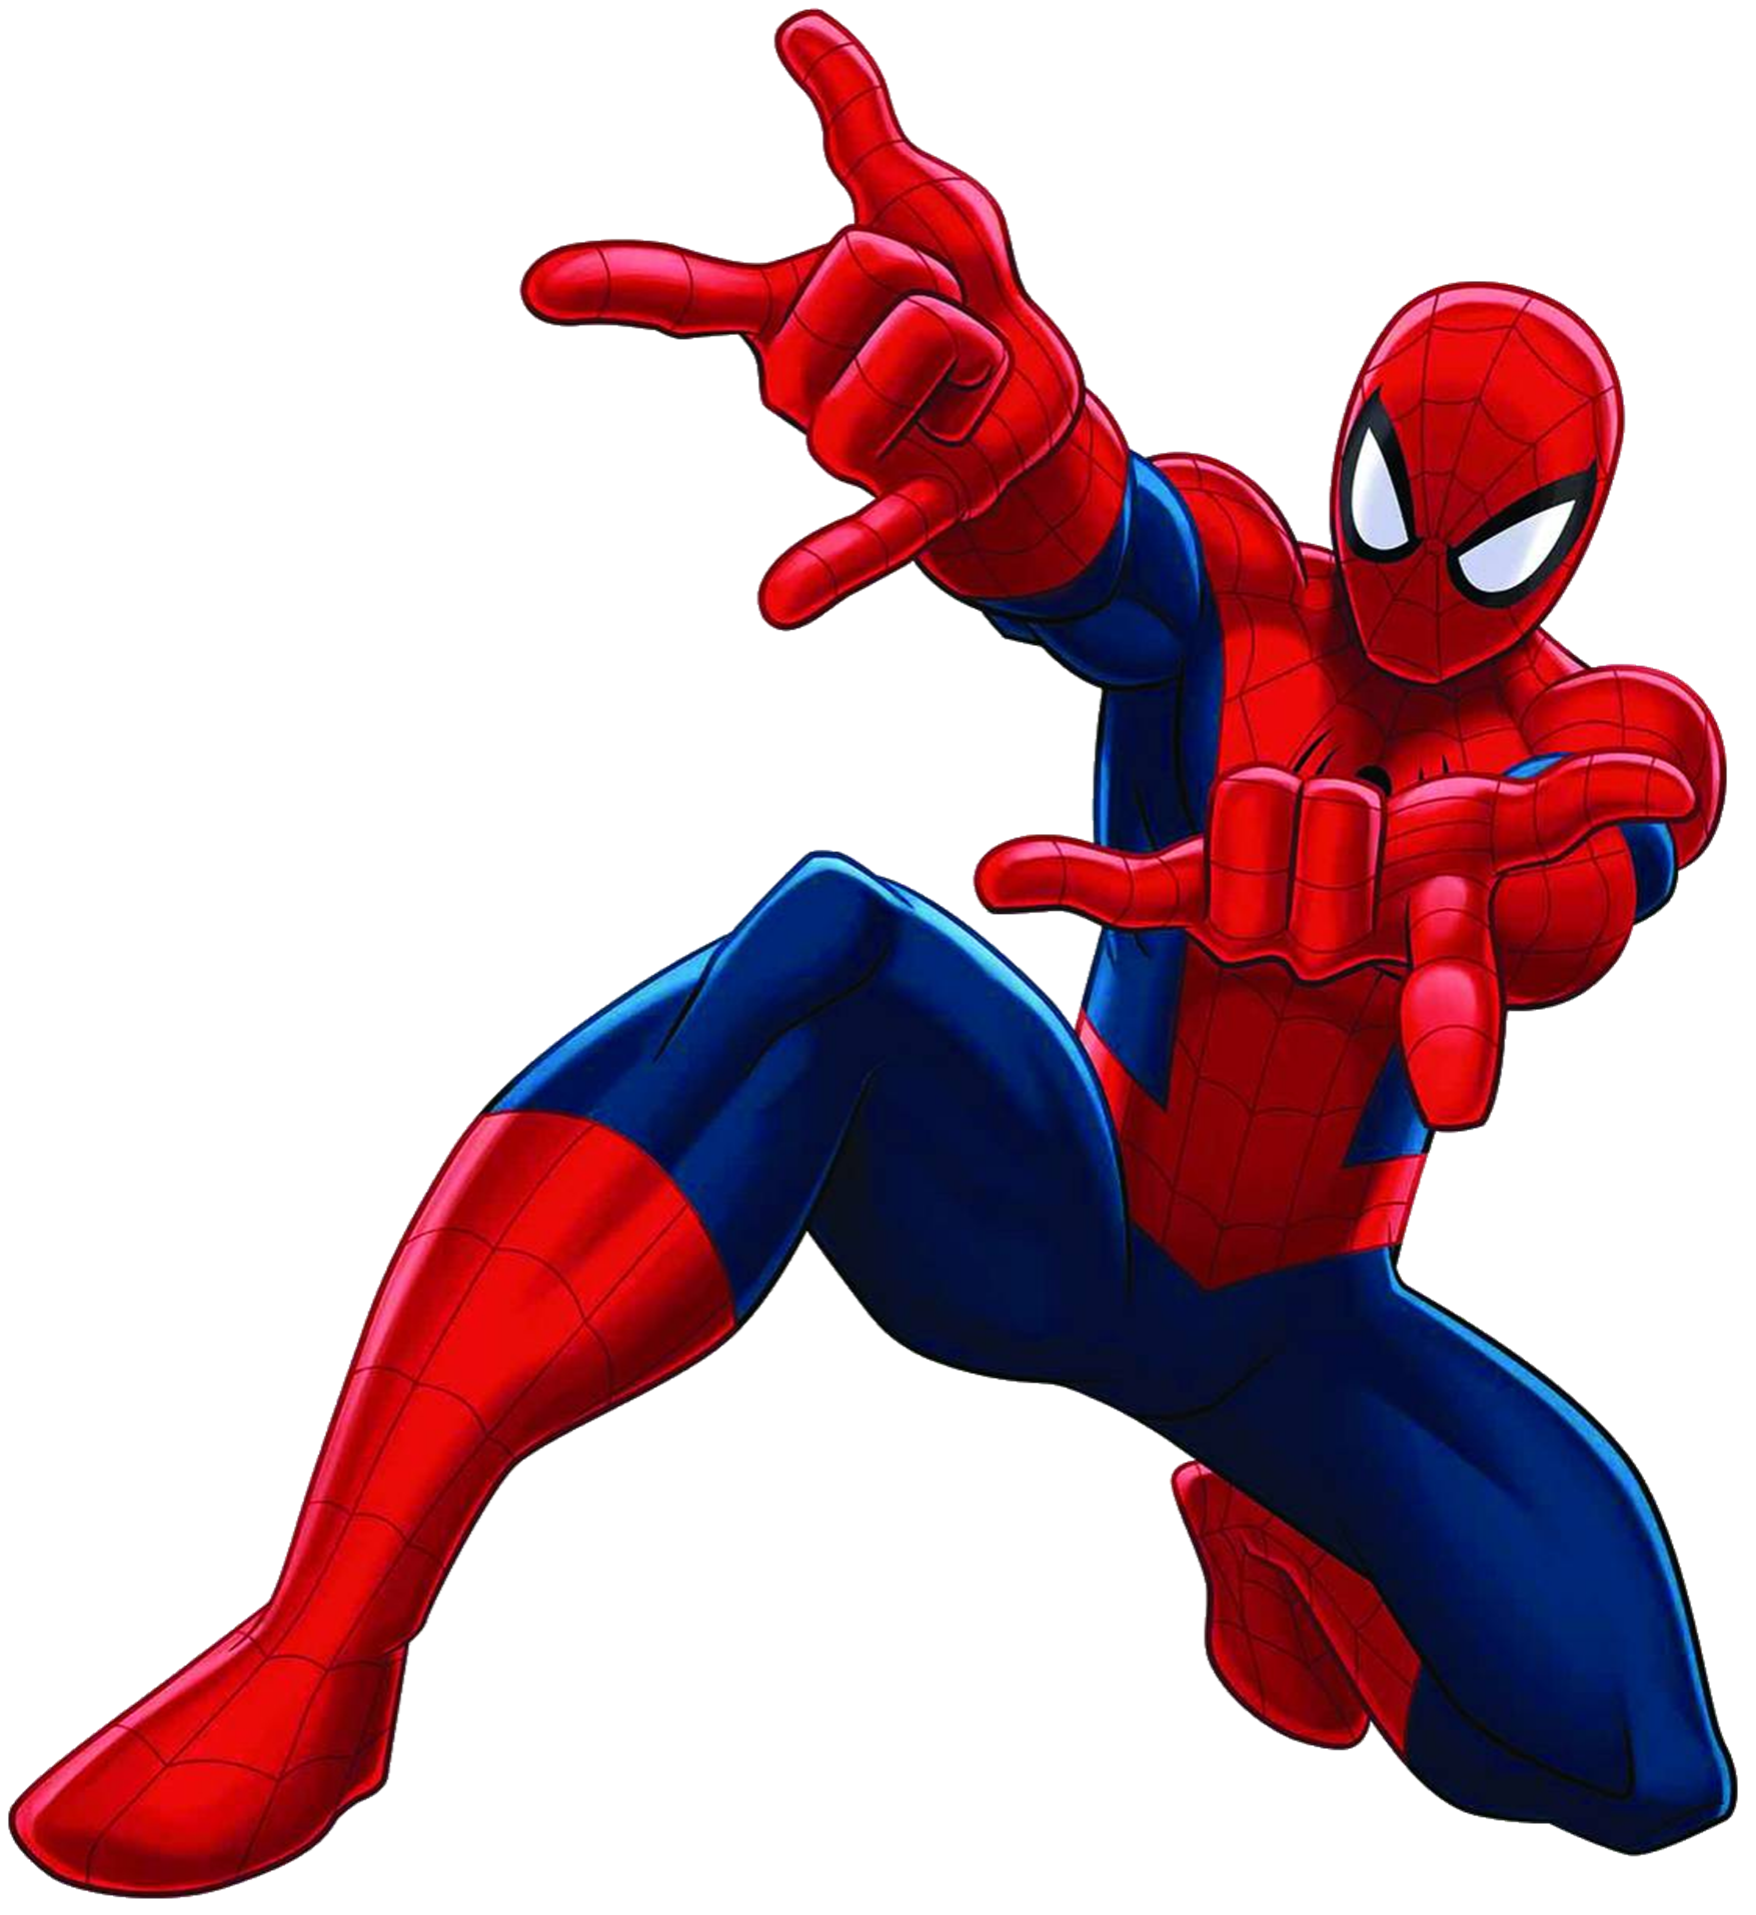 Free high resolution comic book clipart graphic free Spiderman PNG Image - PurePNG | Free transparent CC0 PNG Image Library graphic free